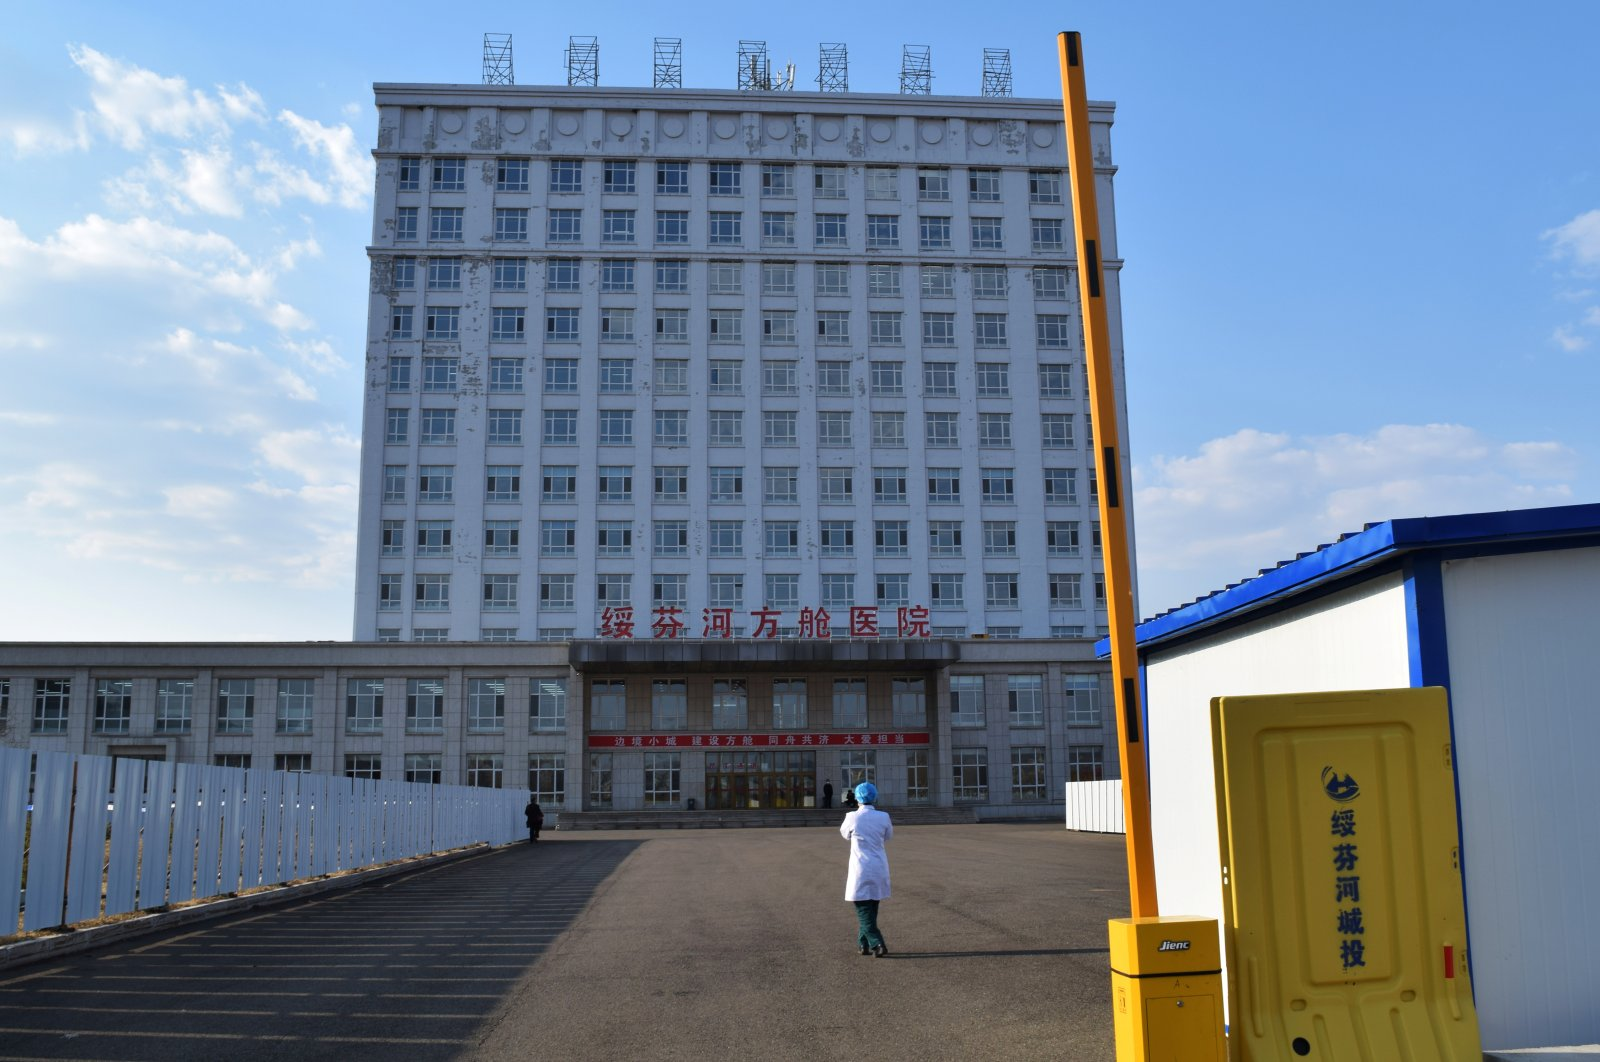 A medical worker is seen outside a makeshift hospital, which was converted from an office building, to treat patients with COVID-19 in Suifenhe, a city in Heilongjiang province on China's border with Russia, April 13, 2020. (REUTERS Photo)